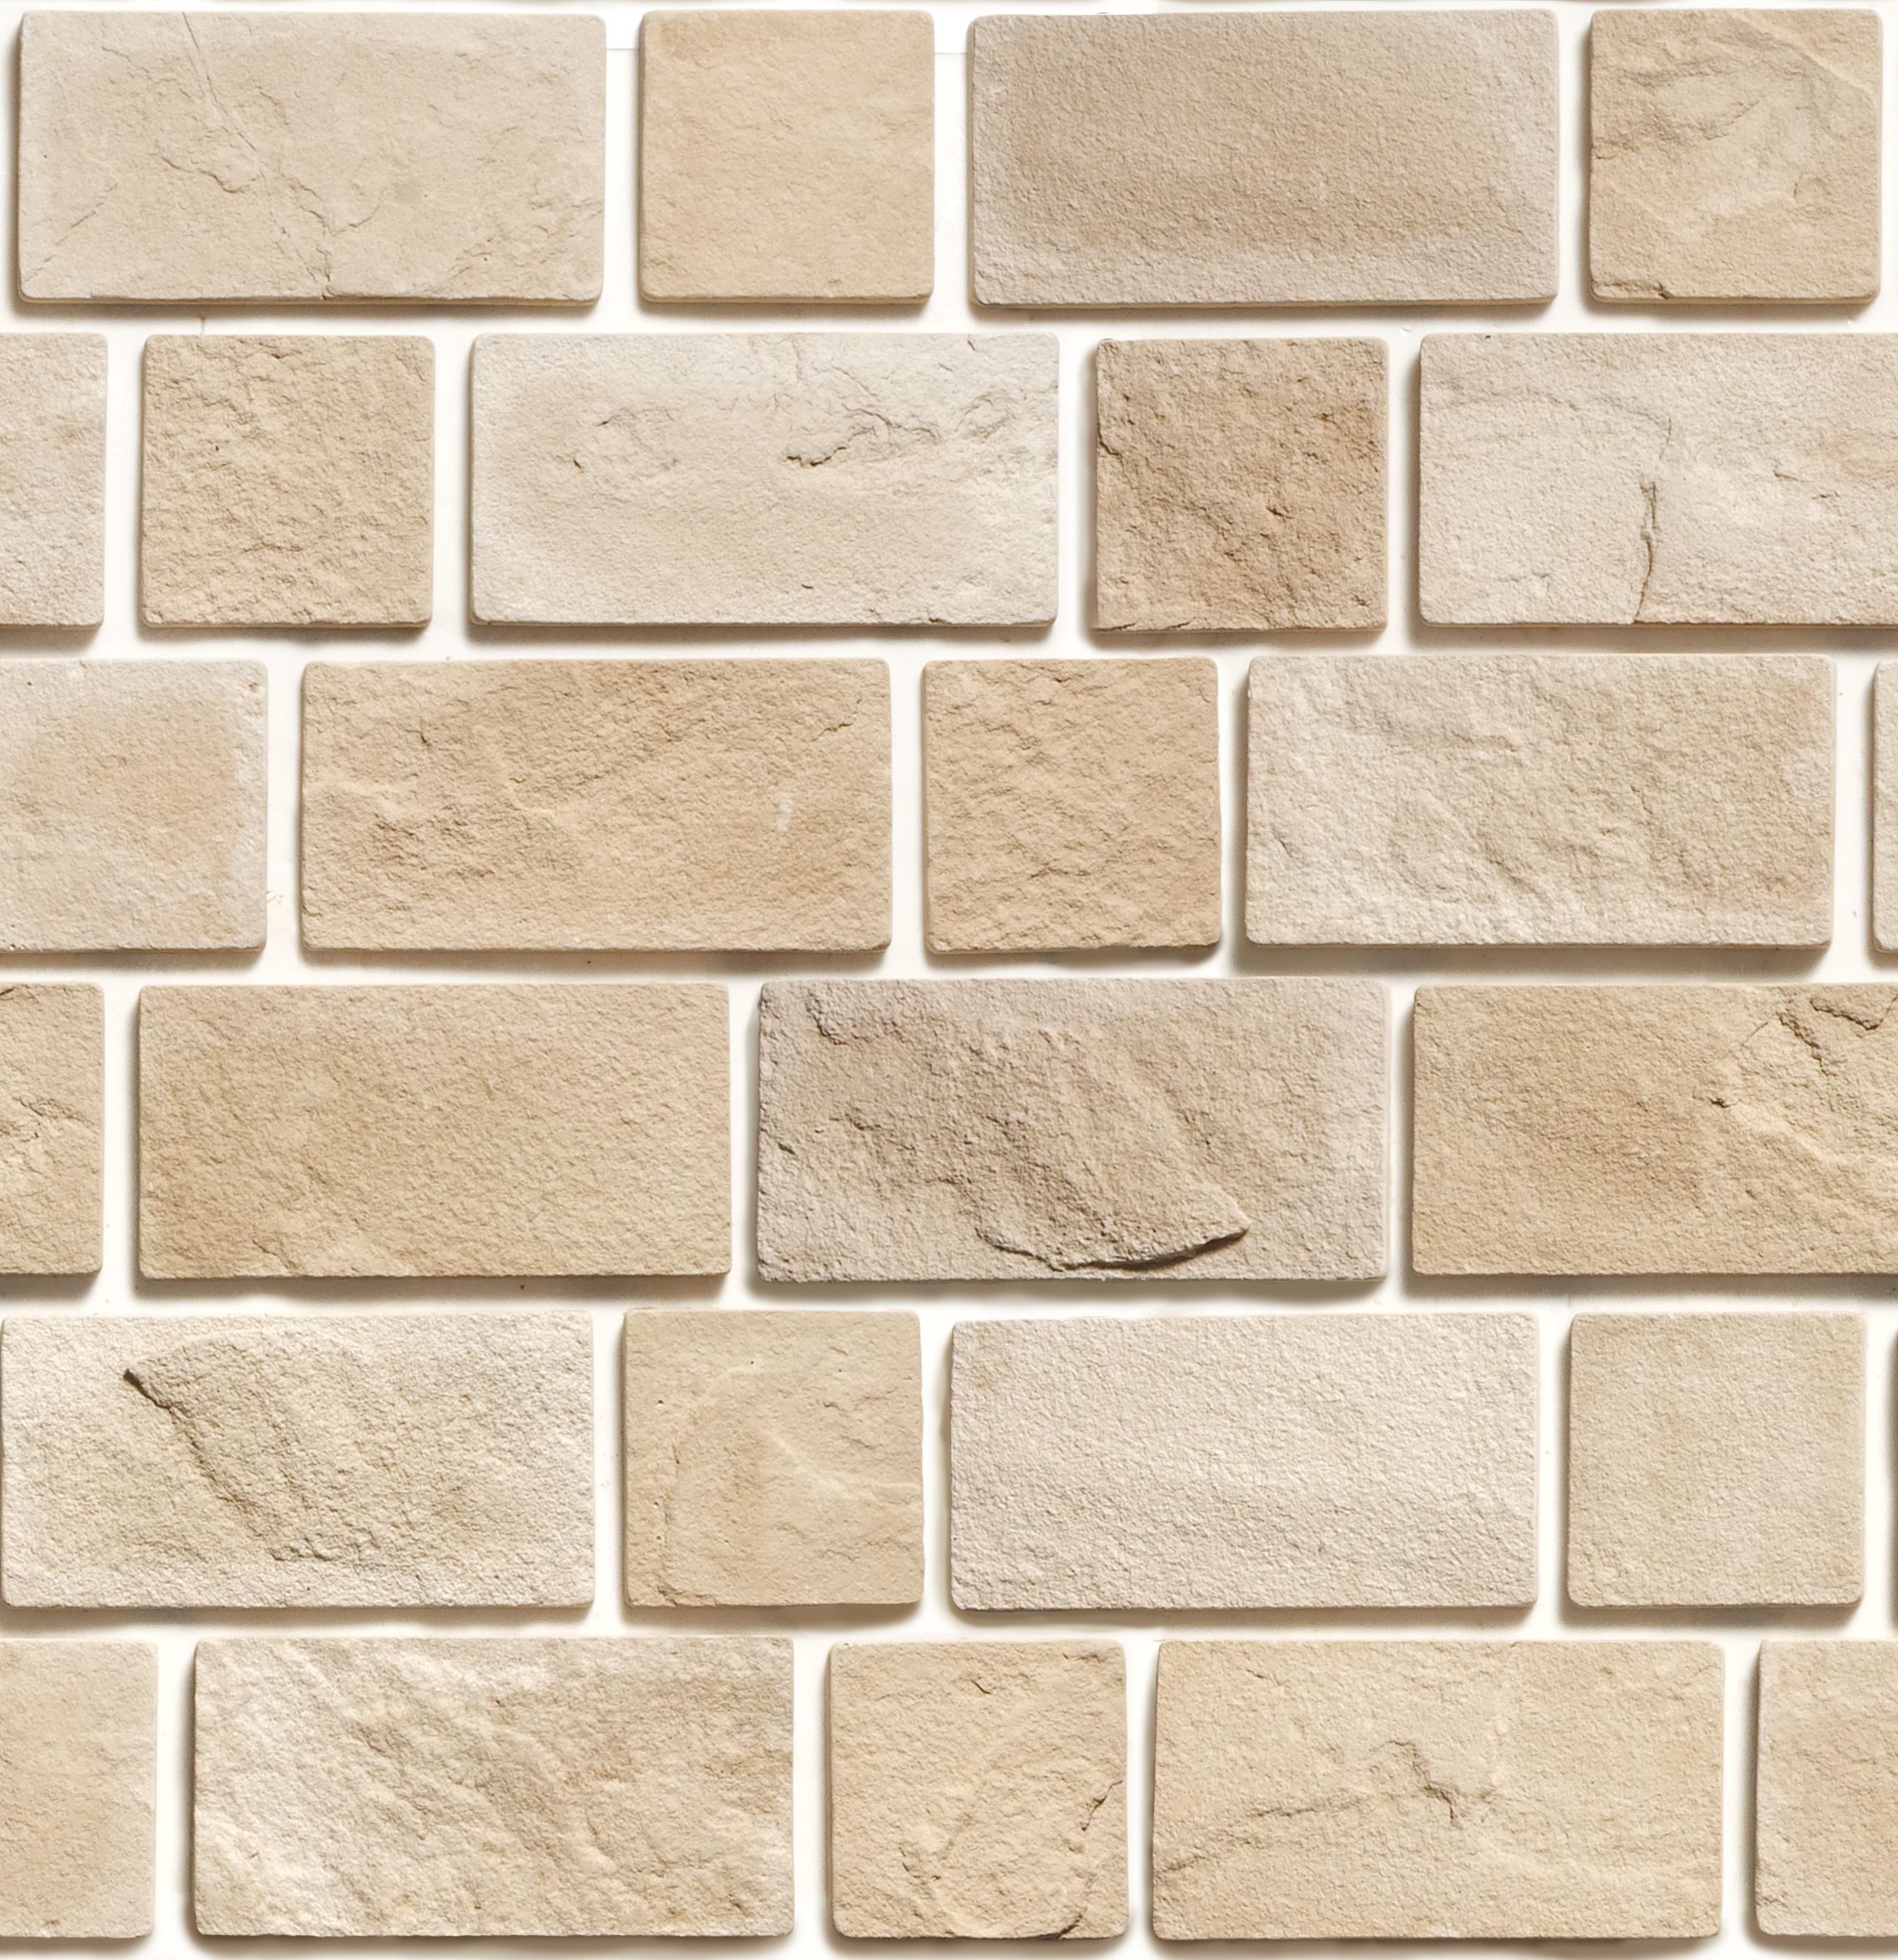 Stone Hewn Tile Texture Wall Photo